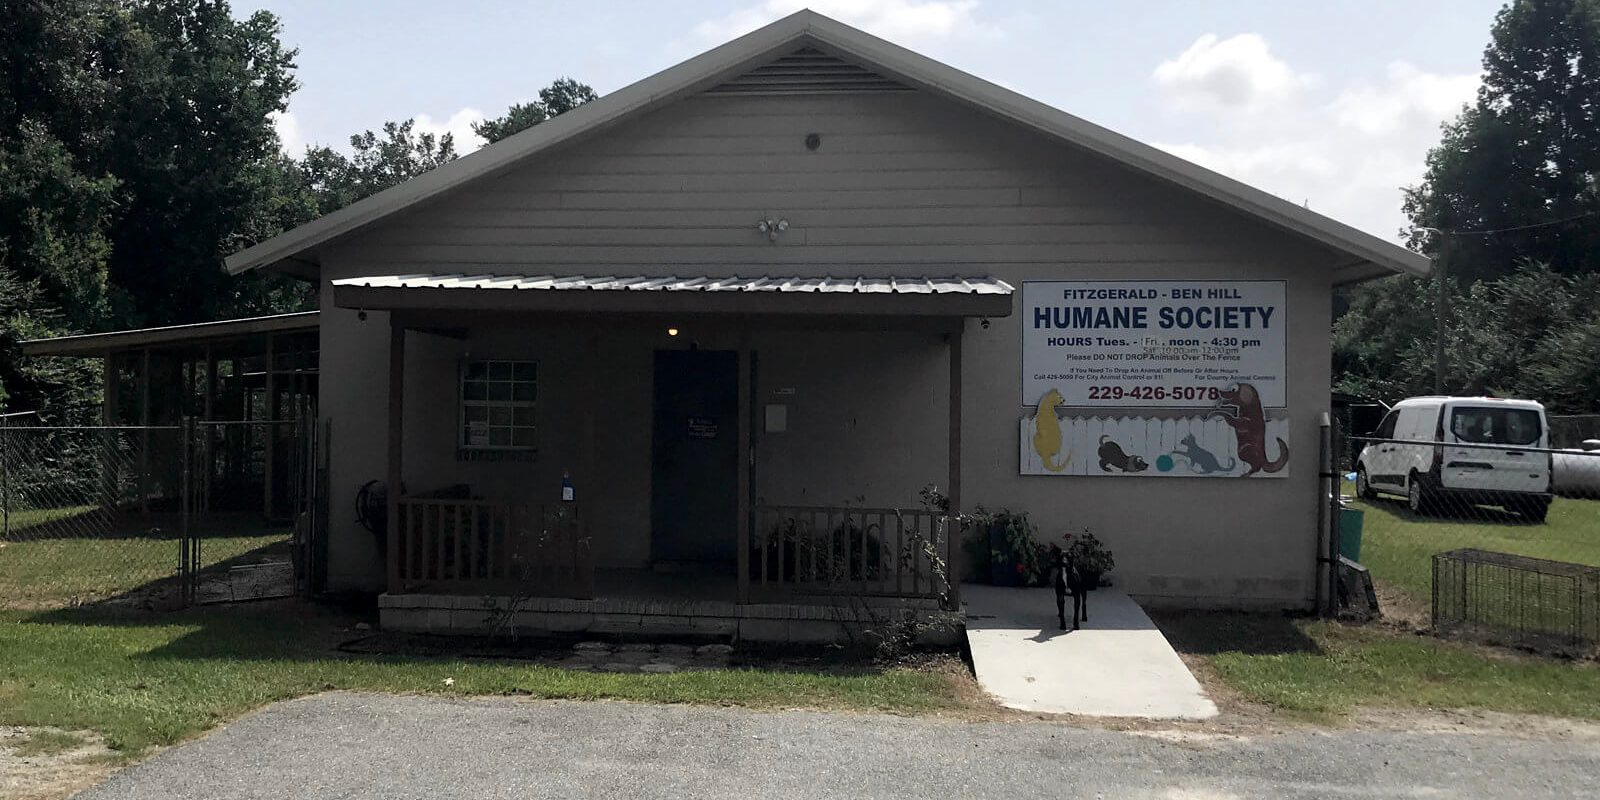 Front door of the Fitzgerald-Ben Hill Humane Society. Shot by Jason Hobbs on an iPhone 7+.